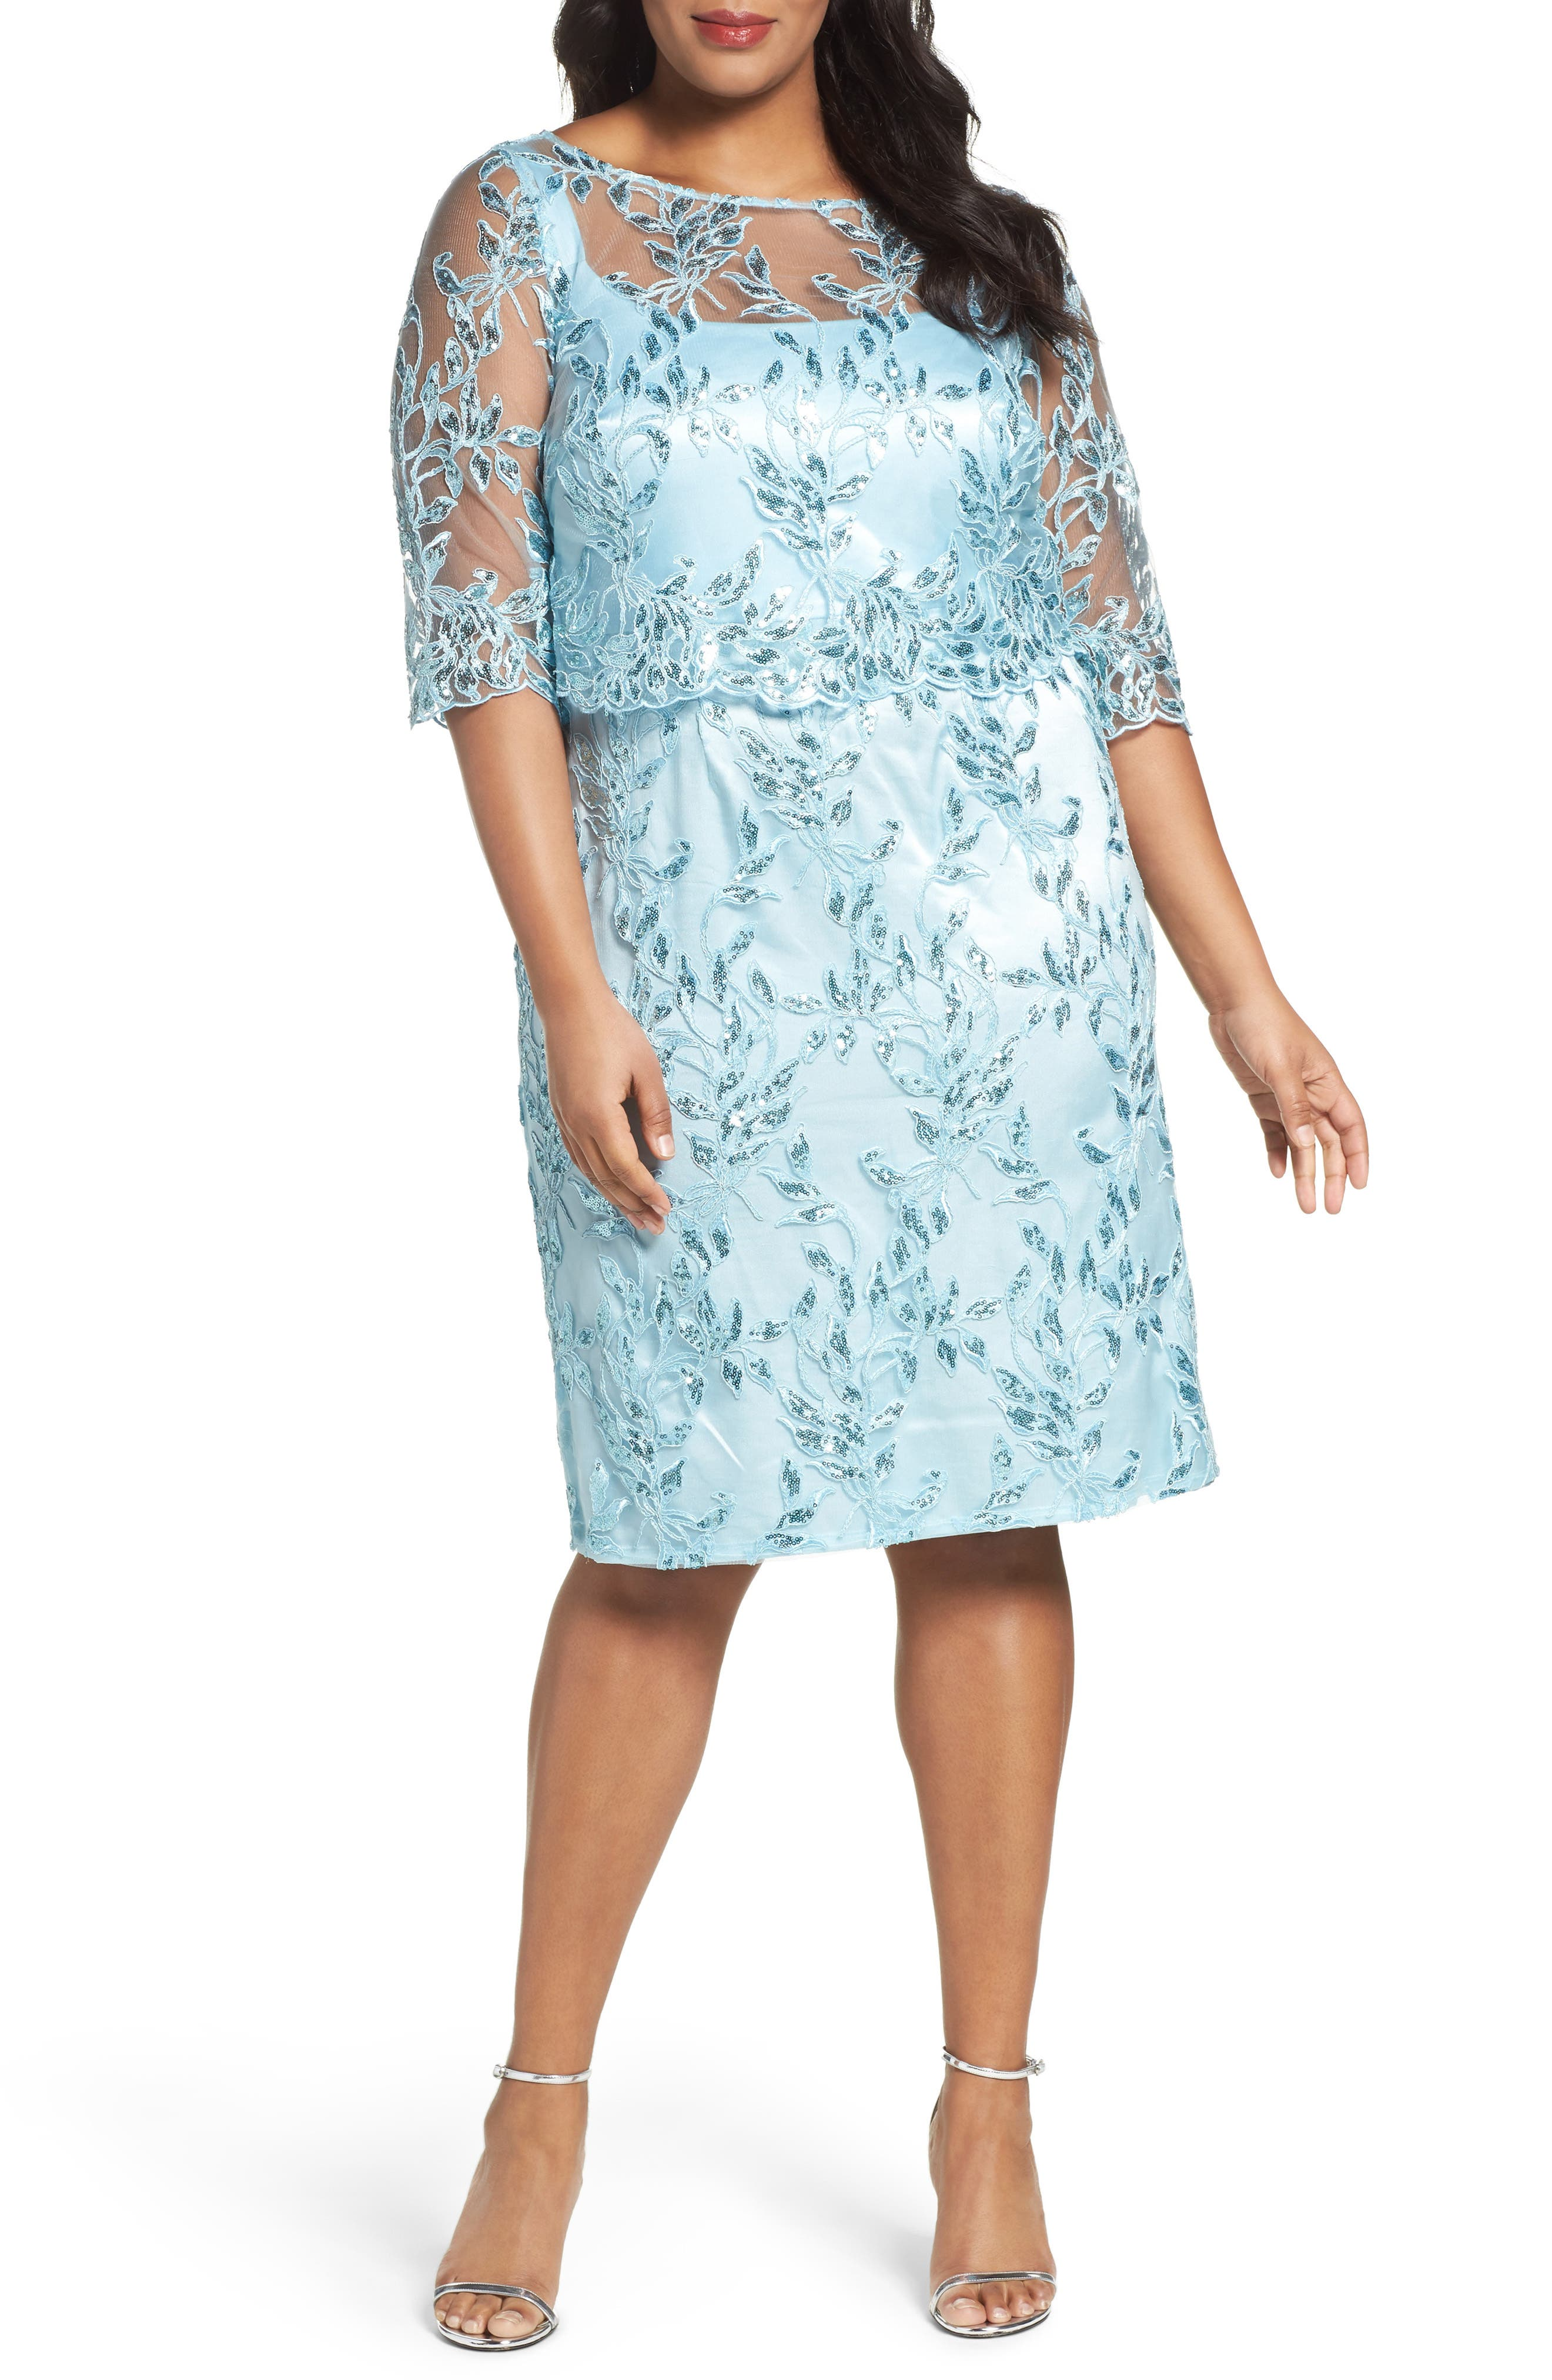 Alternate Image 1 Selected - Brianna Embellished Embroidered Popover Dress (Plus Size)